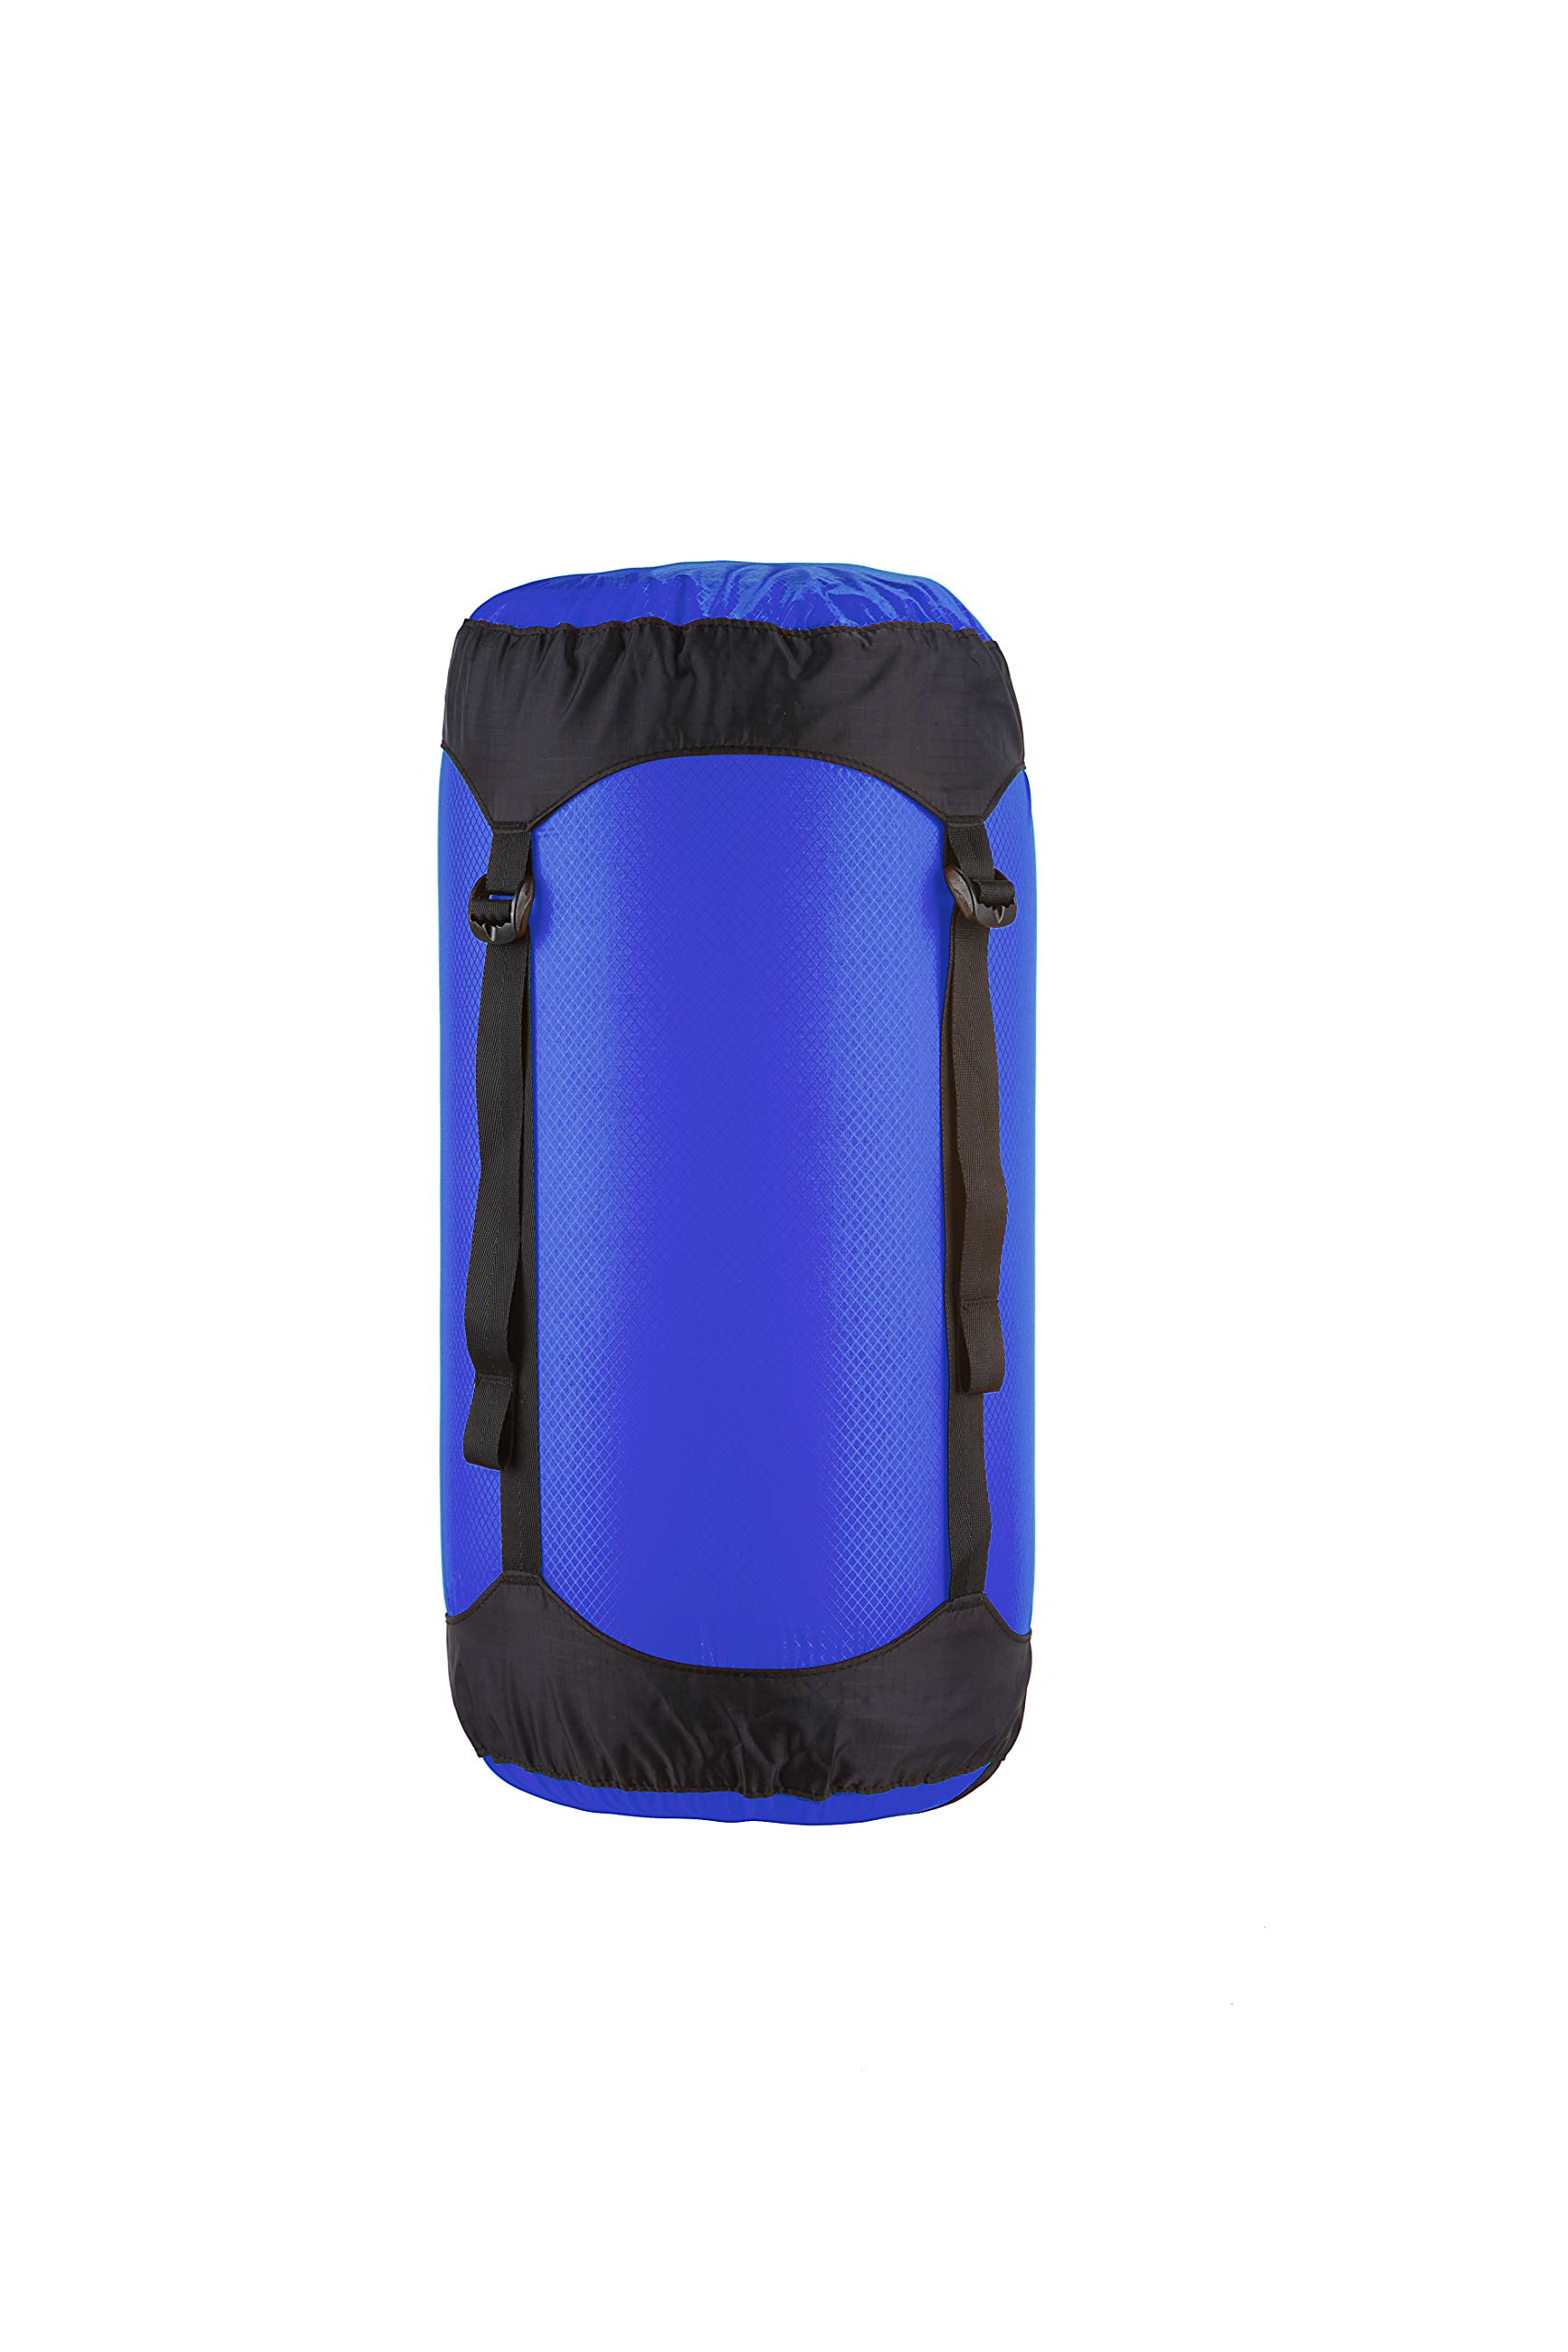 Sea to Summit Ultra-SIL Compression Sack, Royal Blue, 6 Liter by Sea to Summit